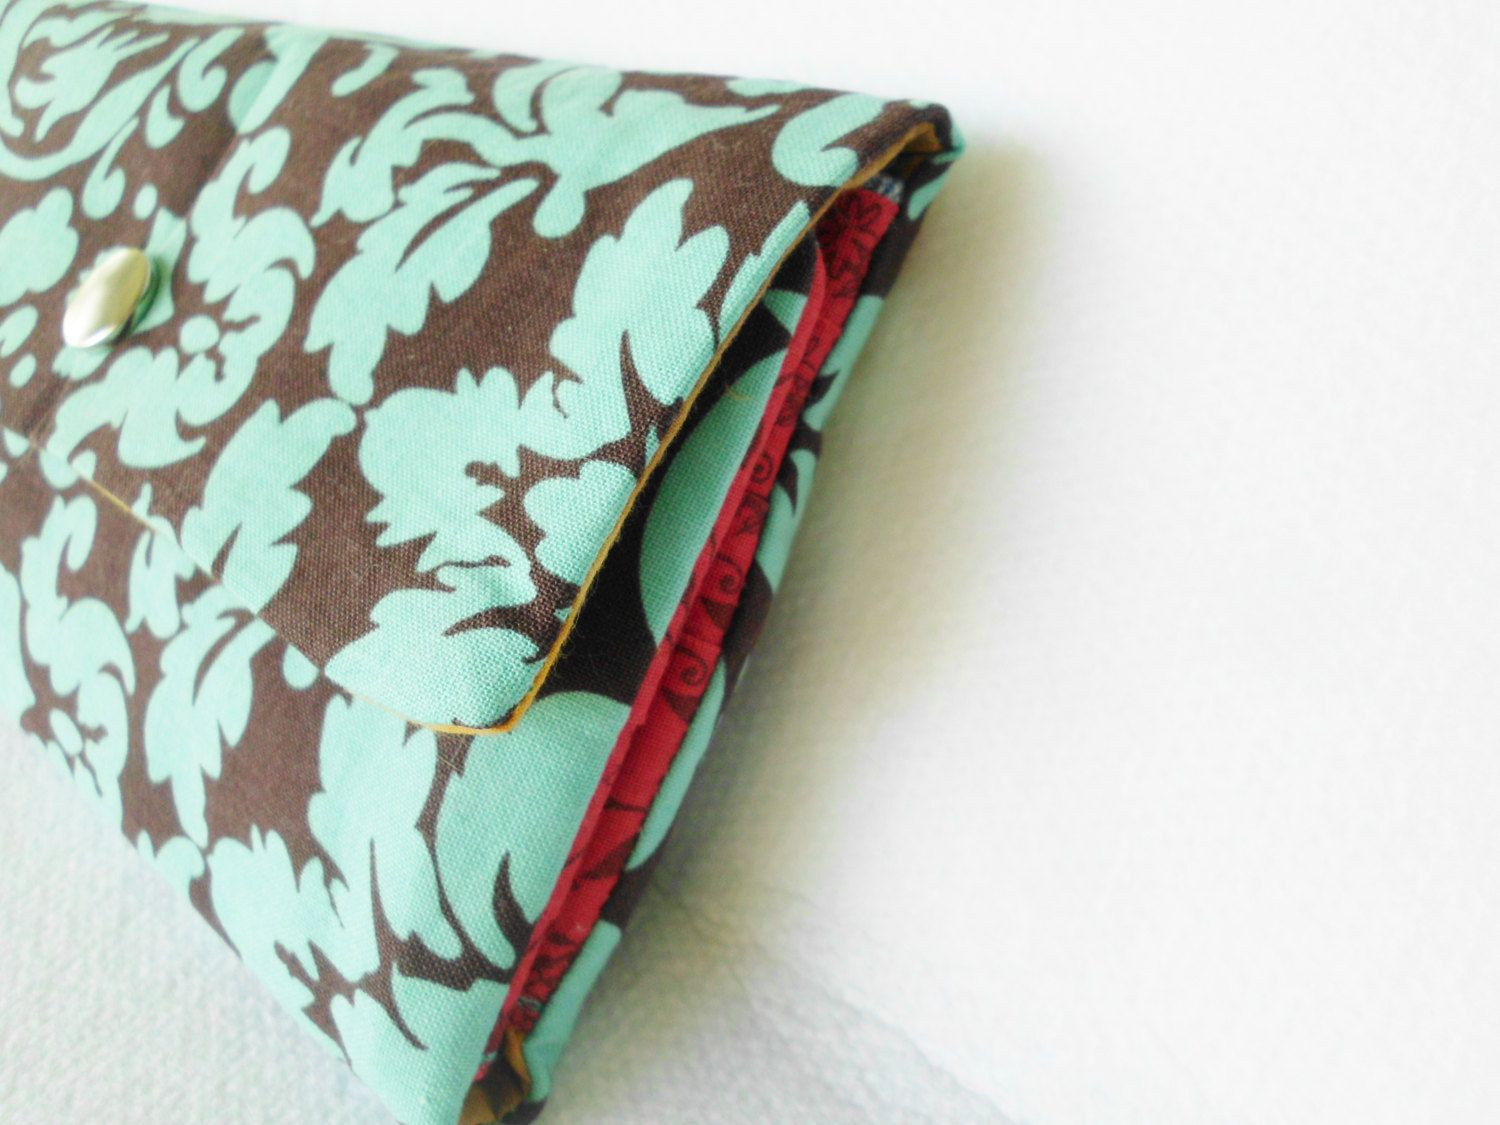 Woman wallet wristlet in teal colors woman billfold wristlet handmade wallet for women in teal turquoise and brown colors handmade wallet by stitchinghook on Etsy